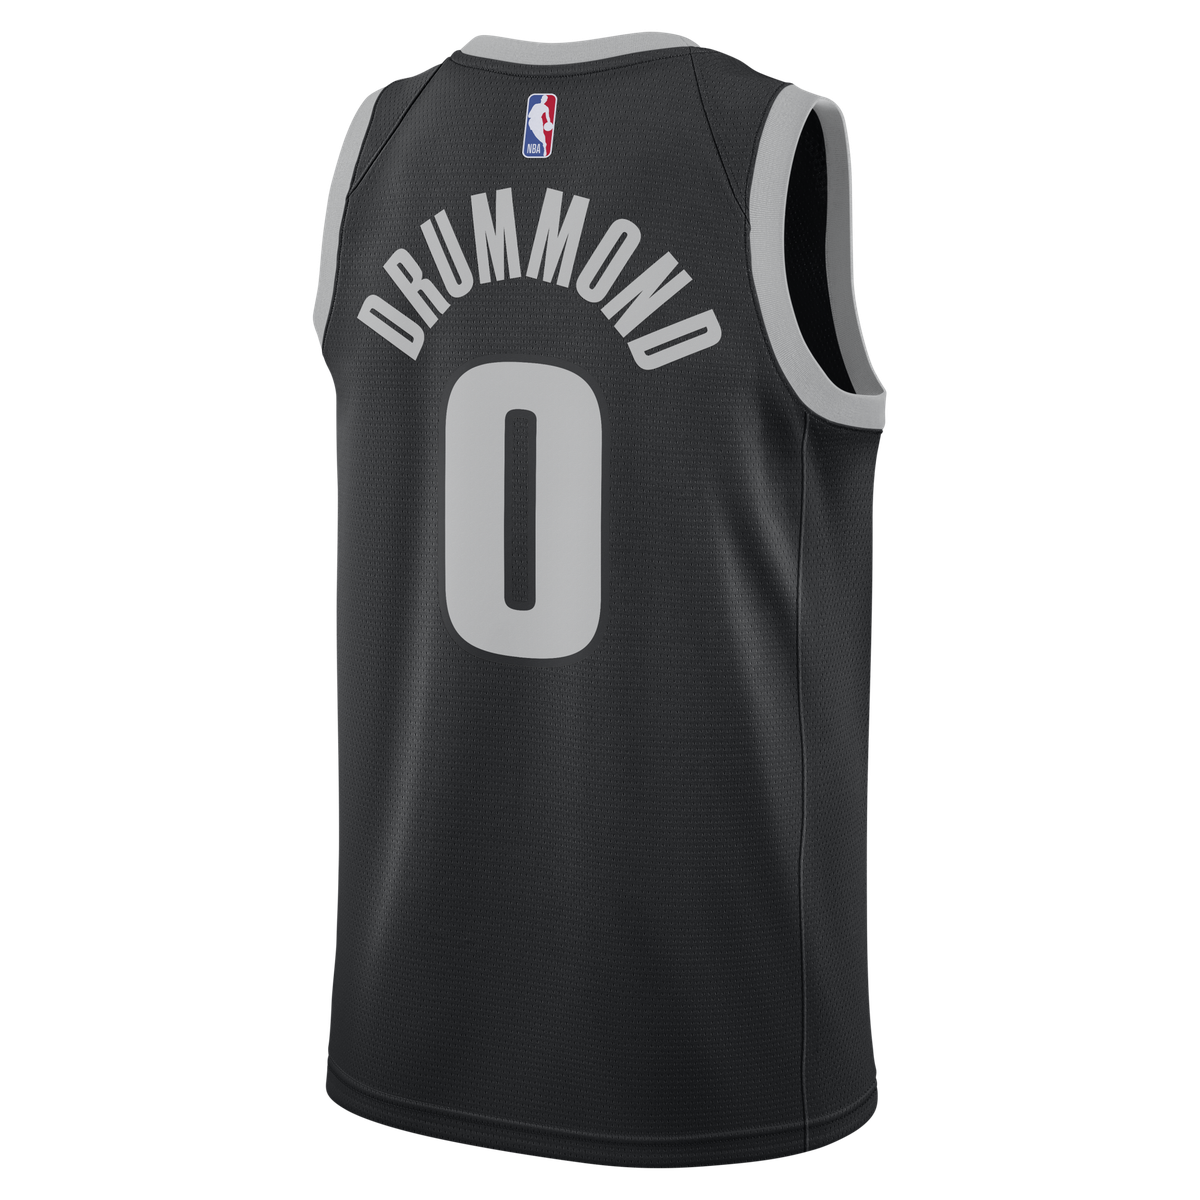 Andre Drummond Nike Swingman Jersey - City Edition for  109.99 Fanatics 465bec4db